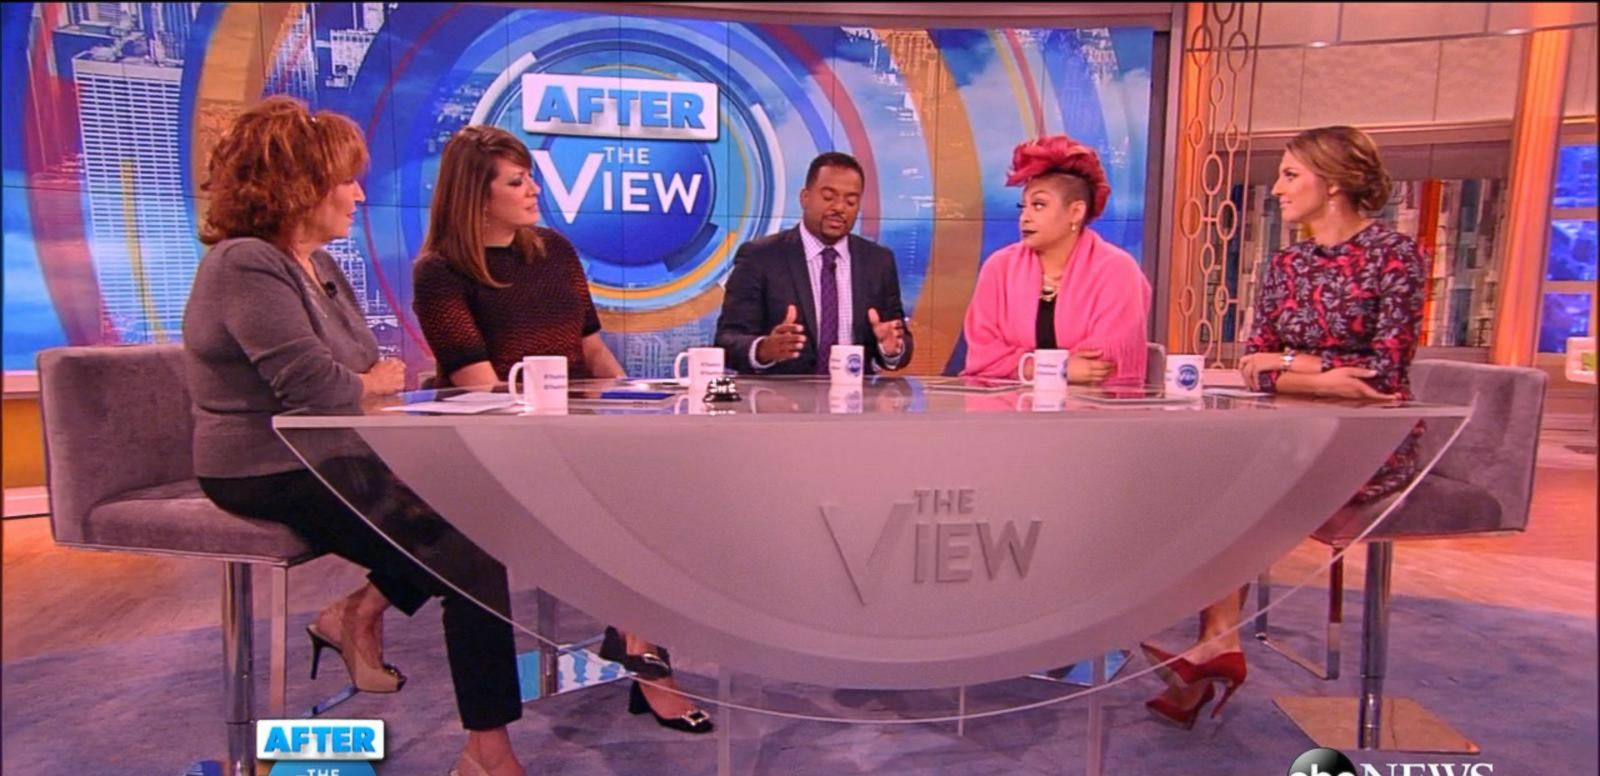 VIDEO: After The View: October 8, 2015